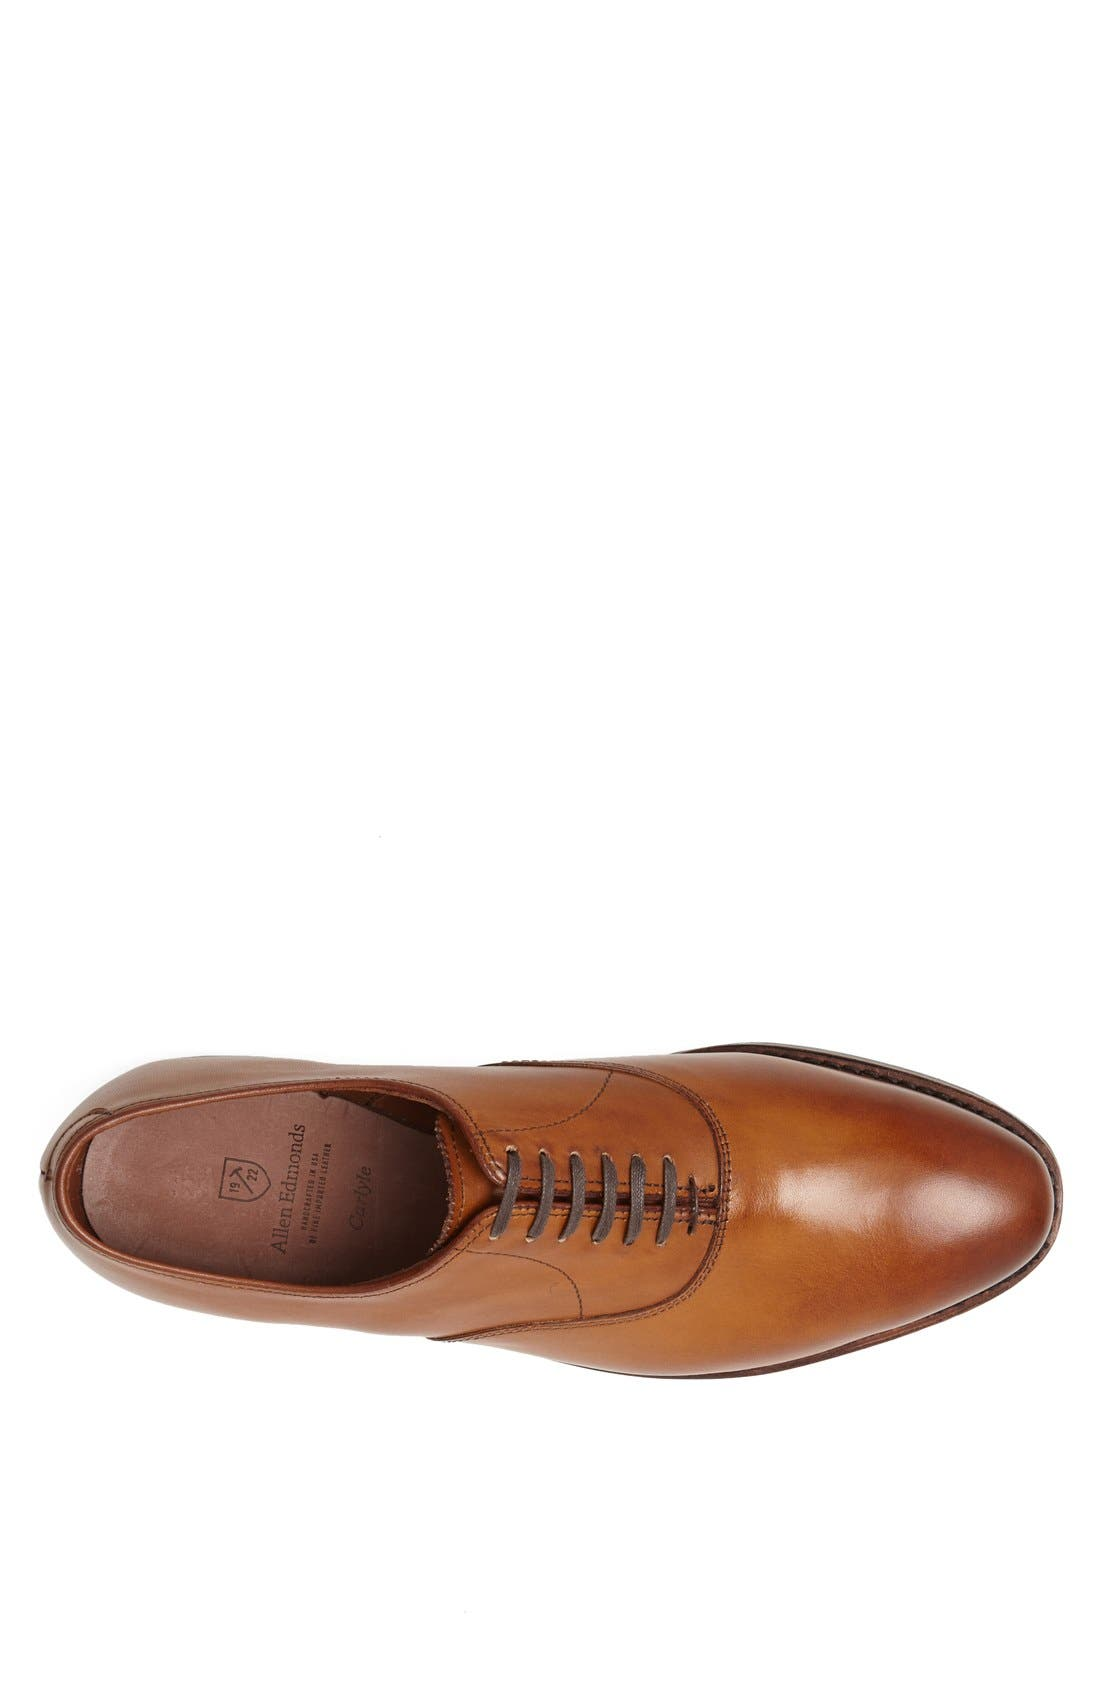 ALLEN EDMONDS, Carlyle Plain Toe Oxford, Alternate thumbnail 3, color, WALNUT LEATHER